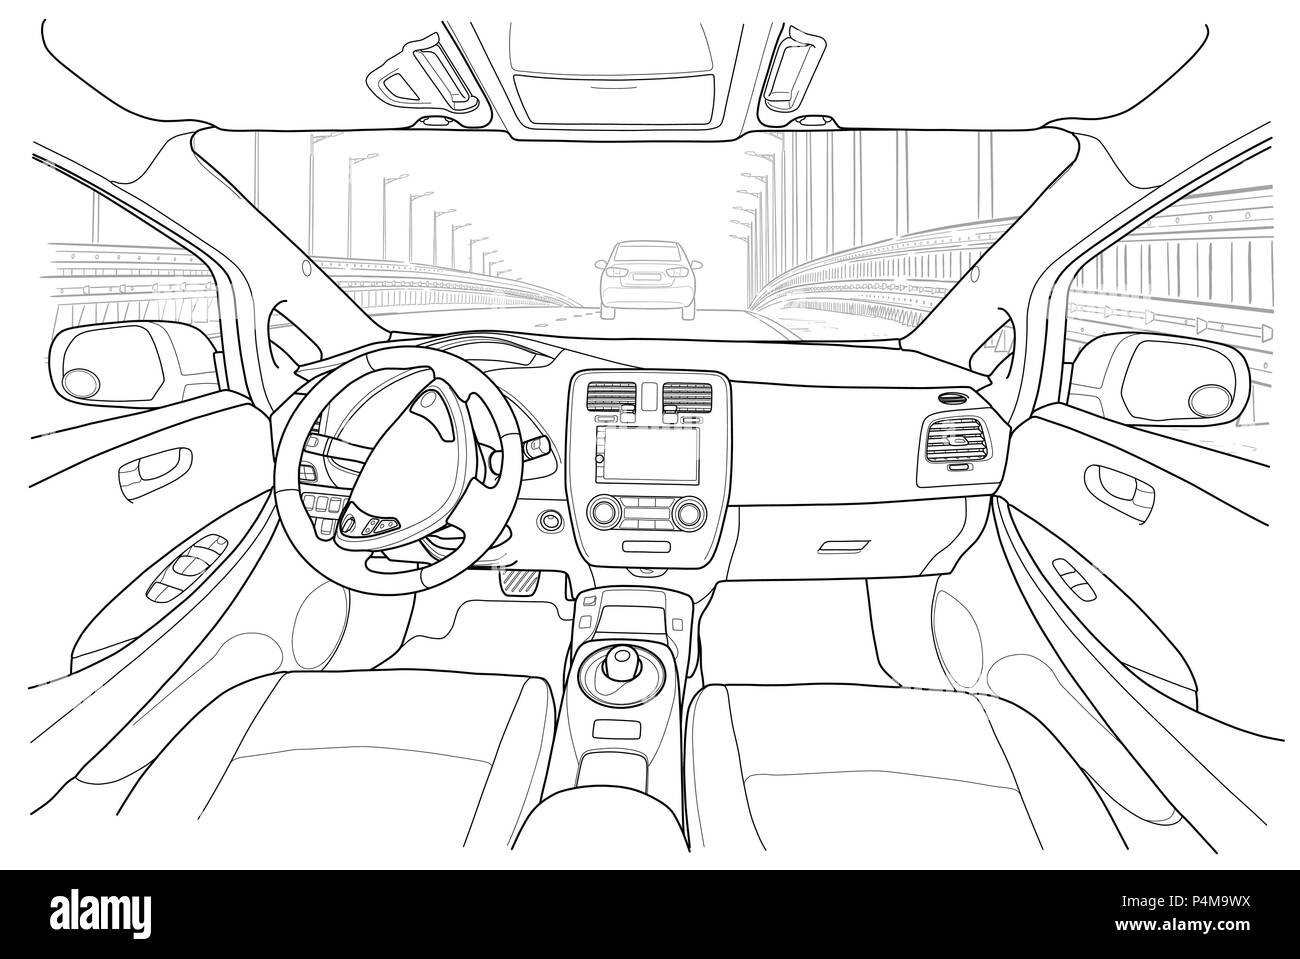 The Machine Inside The Interior Of The Electromobile Vehicle With Automatic Transmission Vector Illustration Of The Lines Stock Vector Image Art Alamy